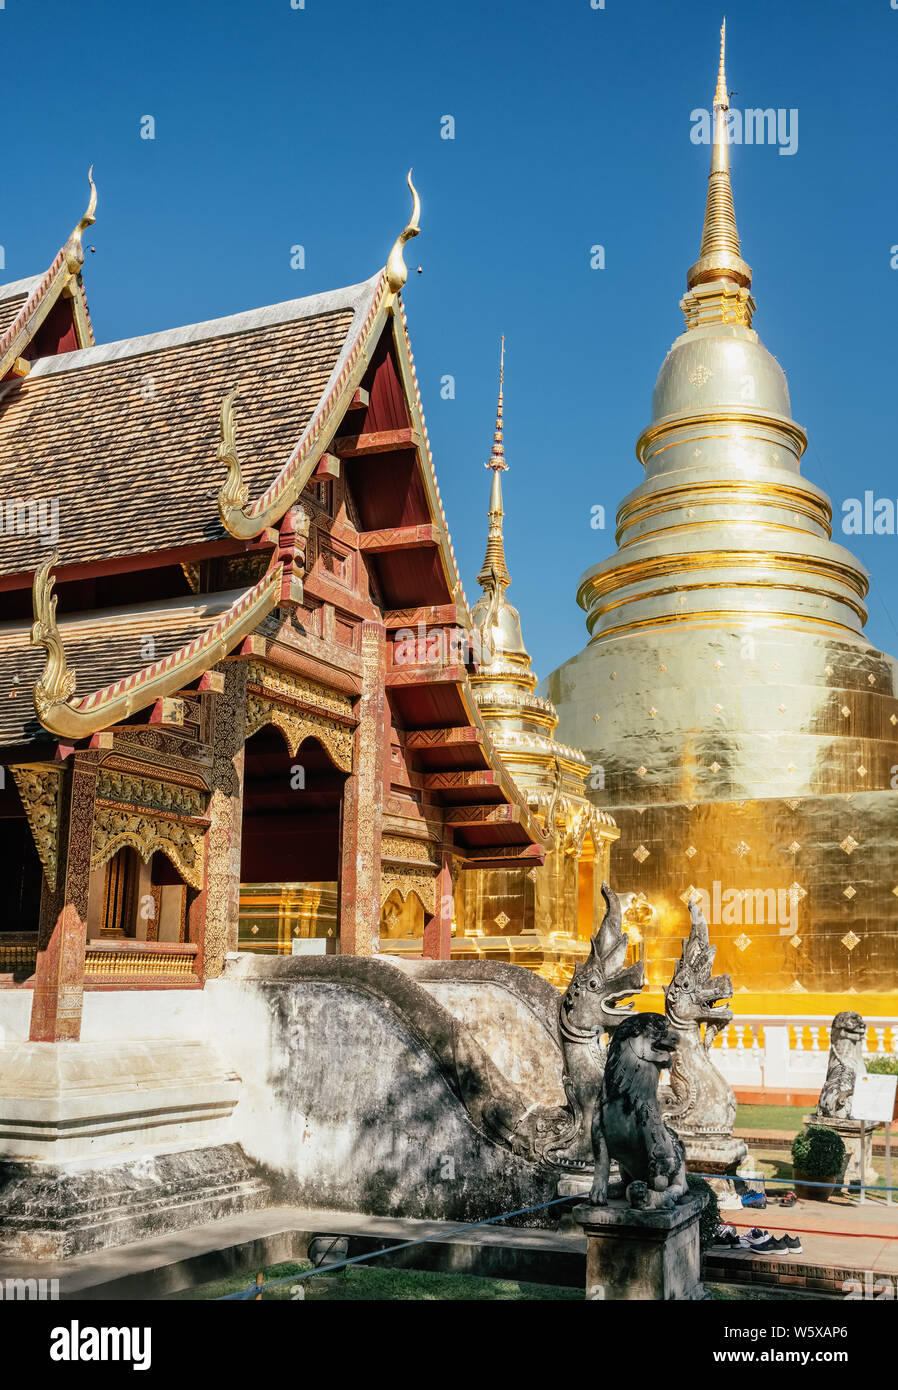 Wat Phra Singh temple in Chiang Mai, Thailand. Stock Photo